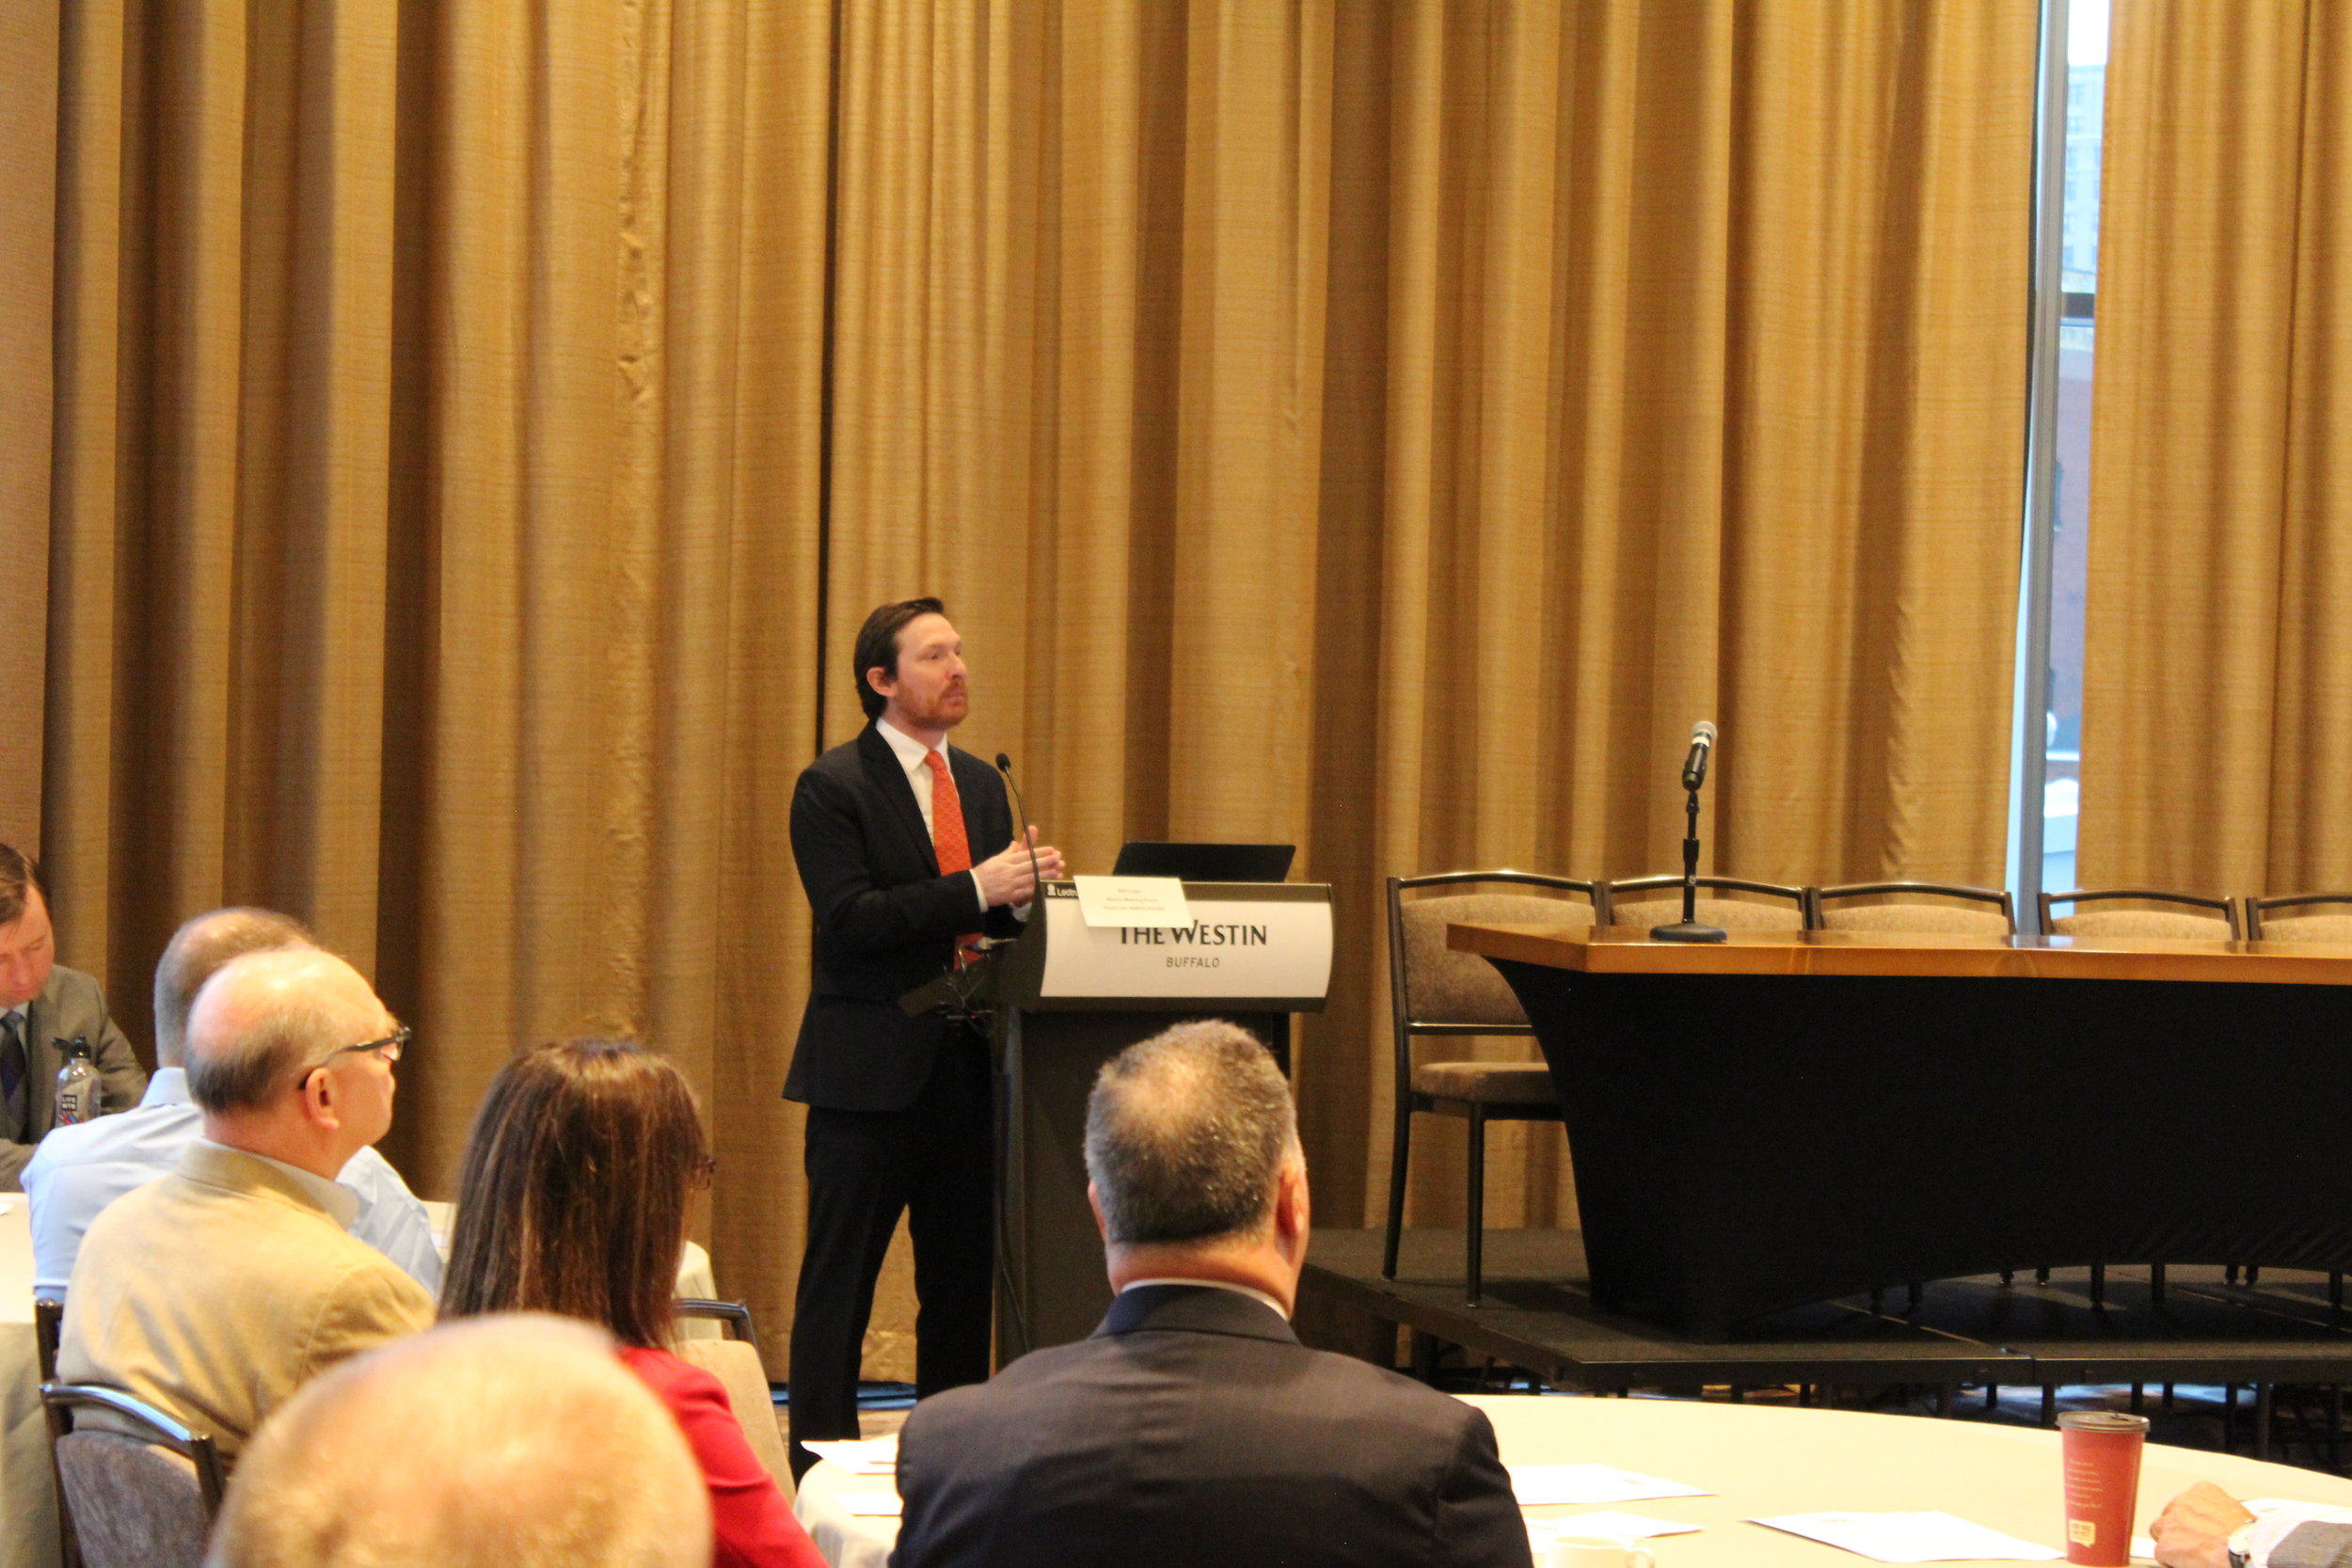 Bart Roberts, Associate Director of Research and Faculty Engagement at UBRI